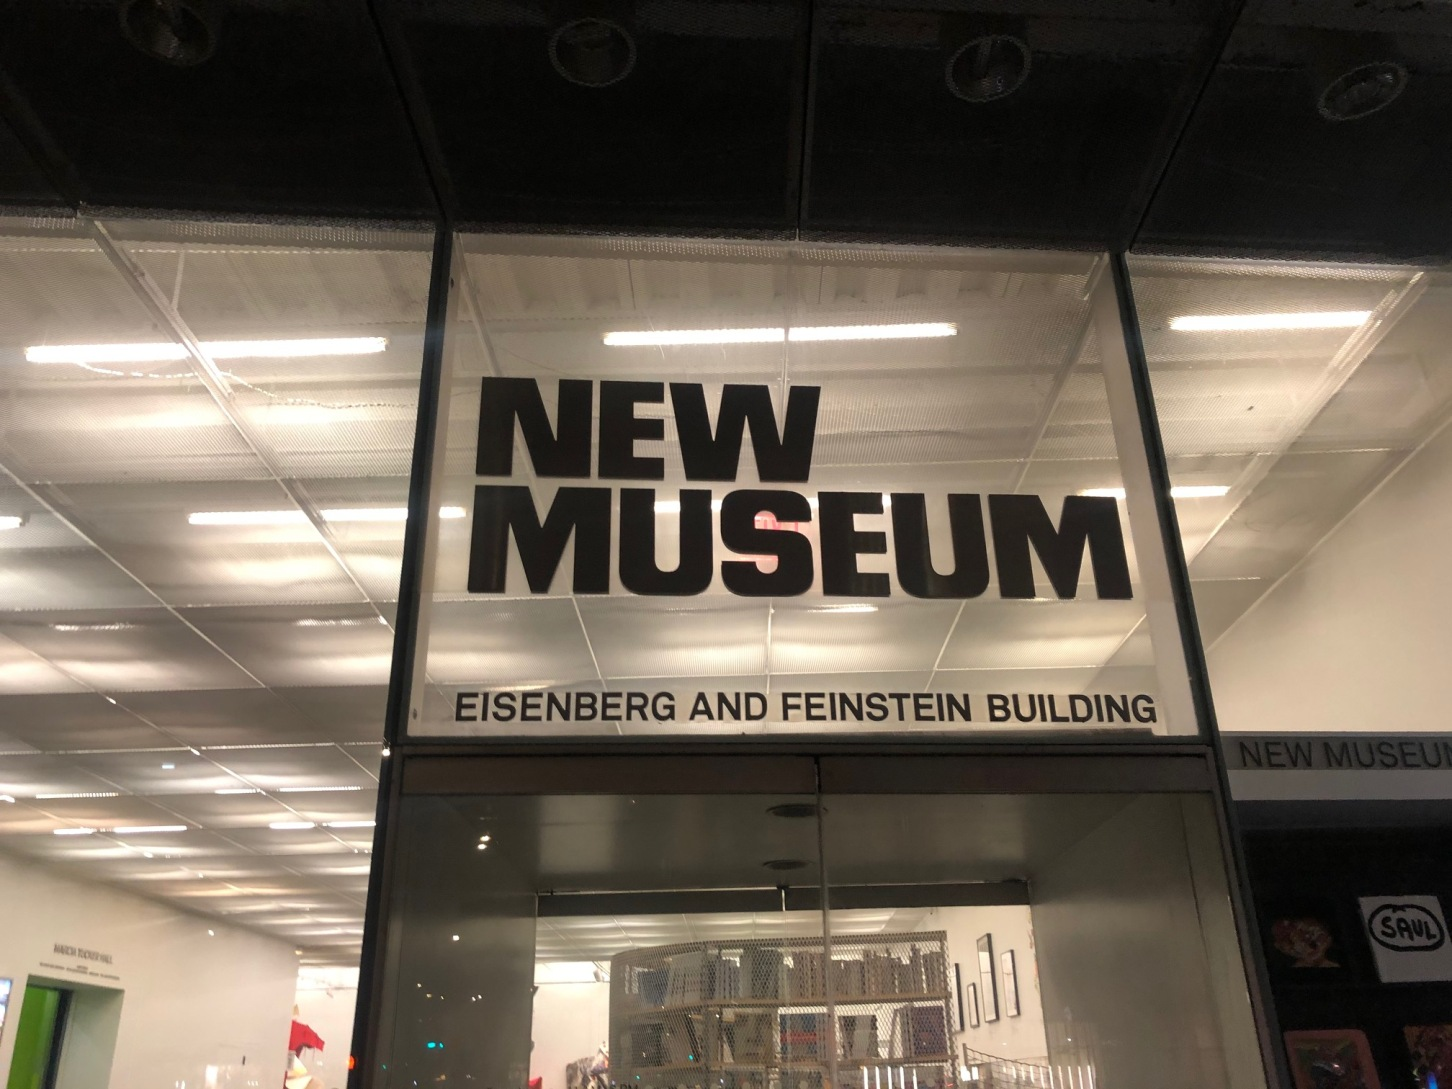 New Art and New Ideas at the New Museum in New York